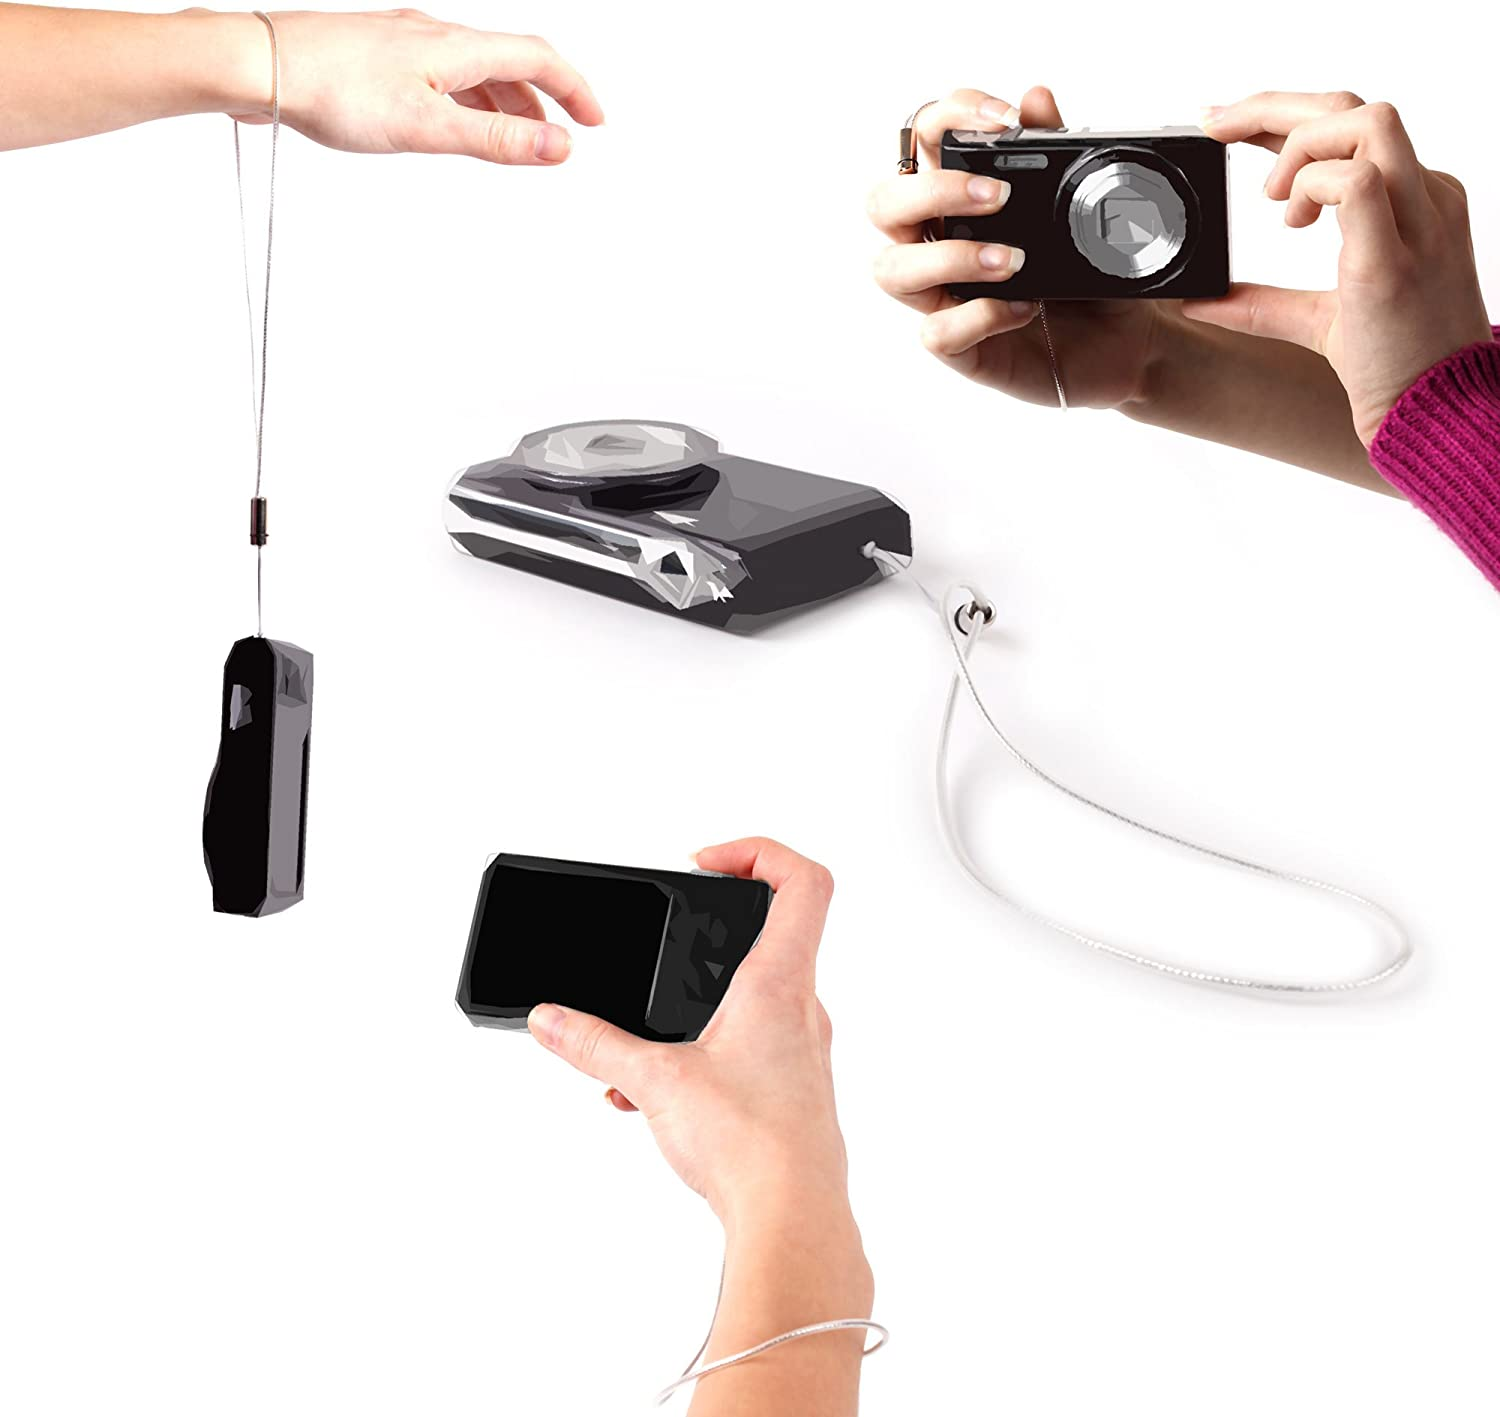 Compatible with JVC GZ-HM300SEK Everio HD /& MS110BEK Camcorders DURAGADGET Hardwearing Braided Wrist Carrying Strap